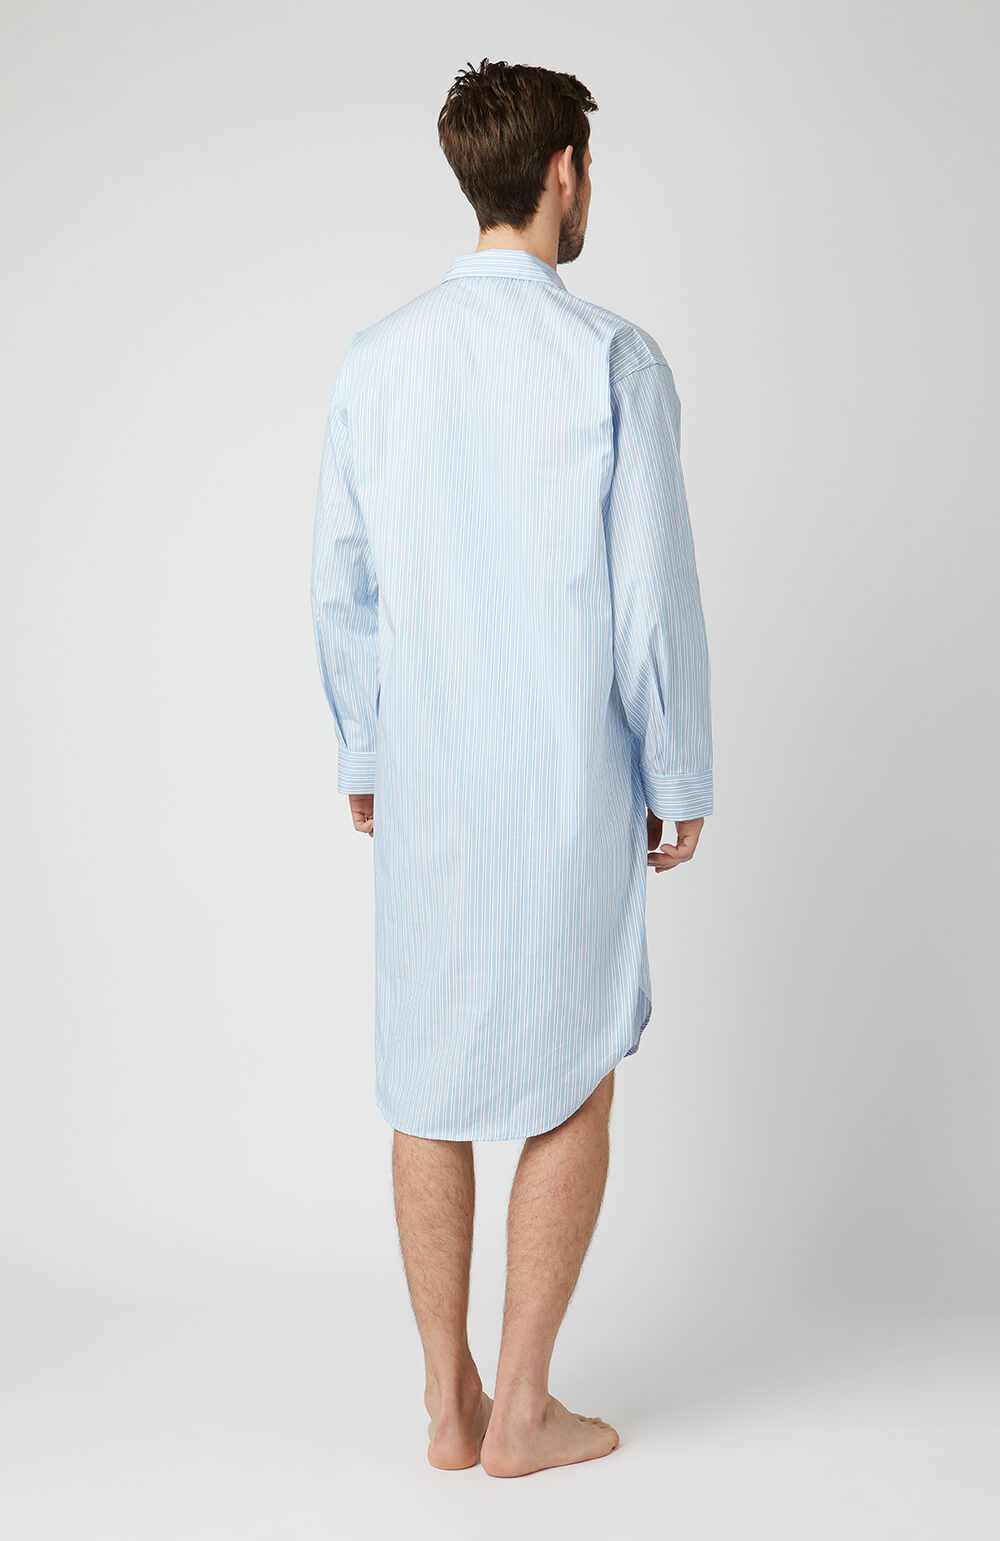 HERITAGE NIGHTSHIRT - A264 | Bonsoir of London